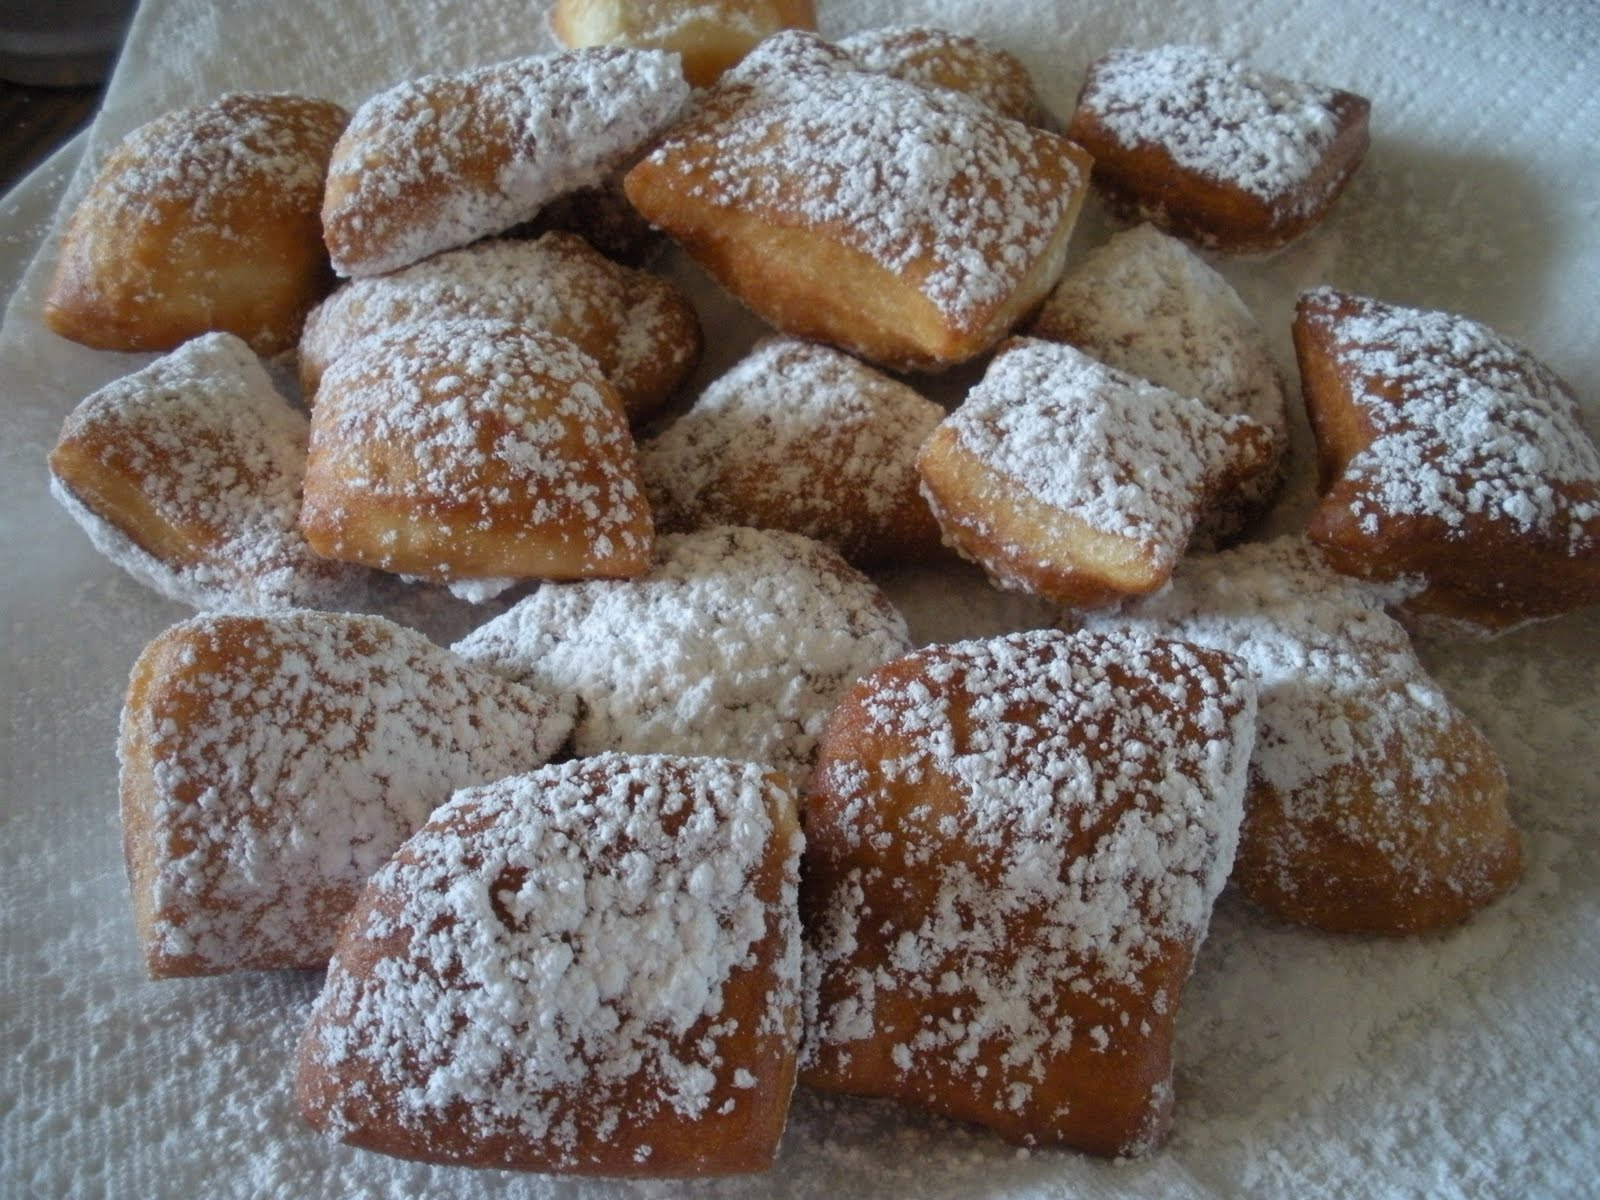 ... beignets salt cod beignets with herbed yogurt baked beignets with